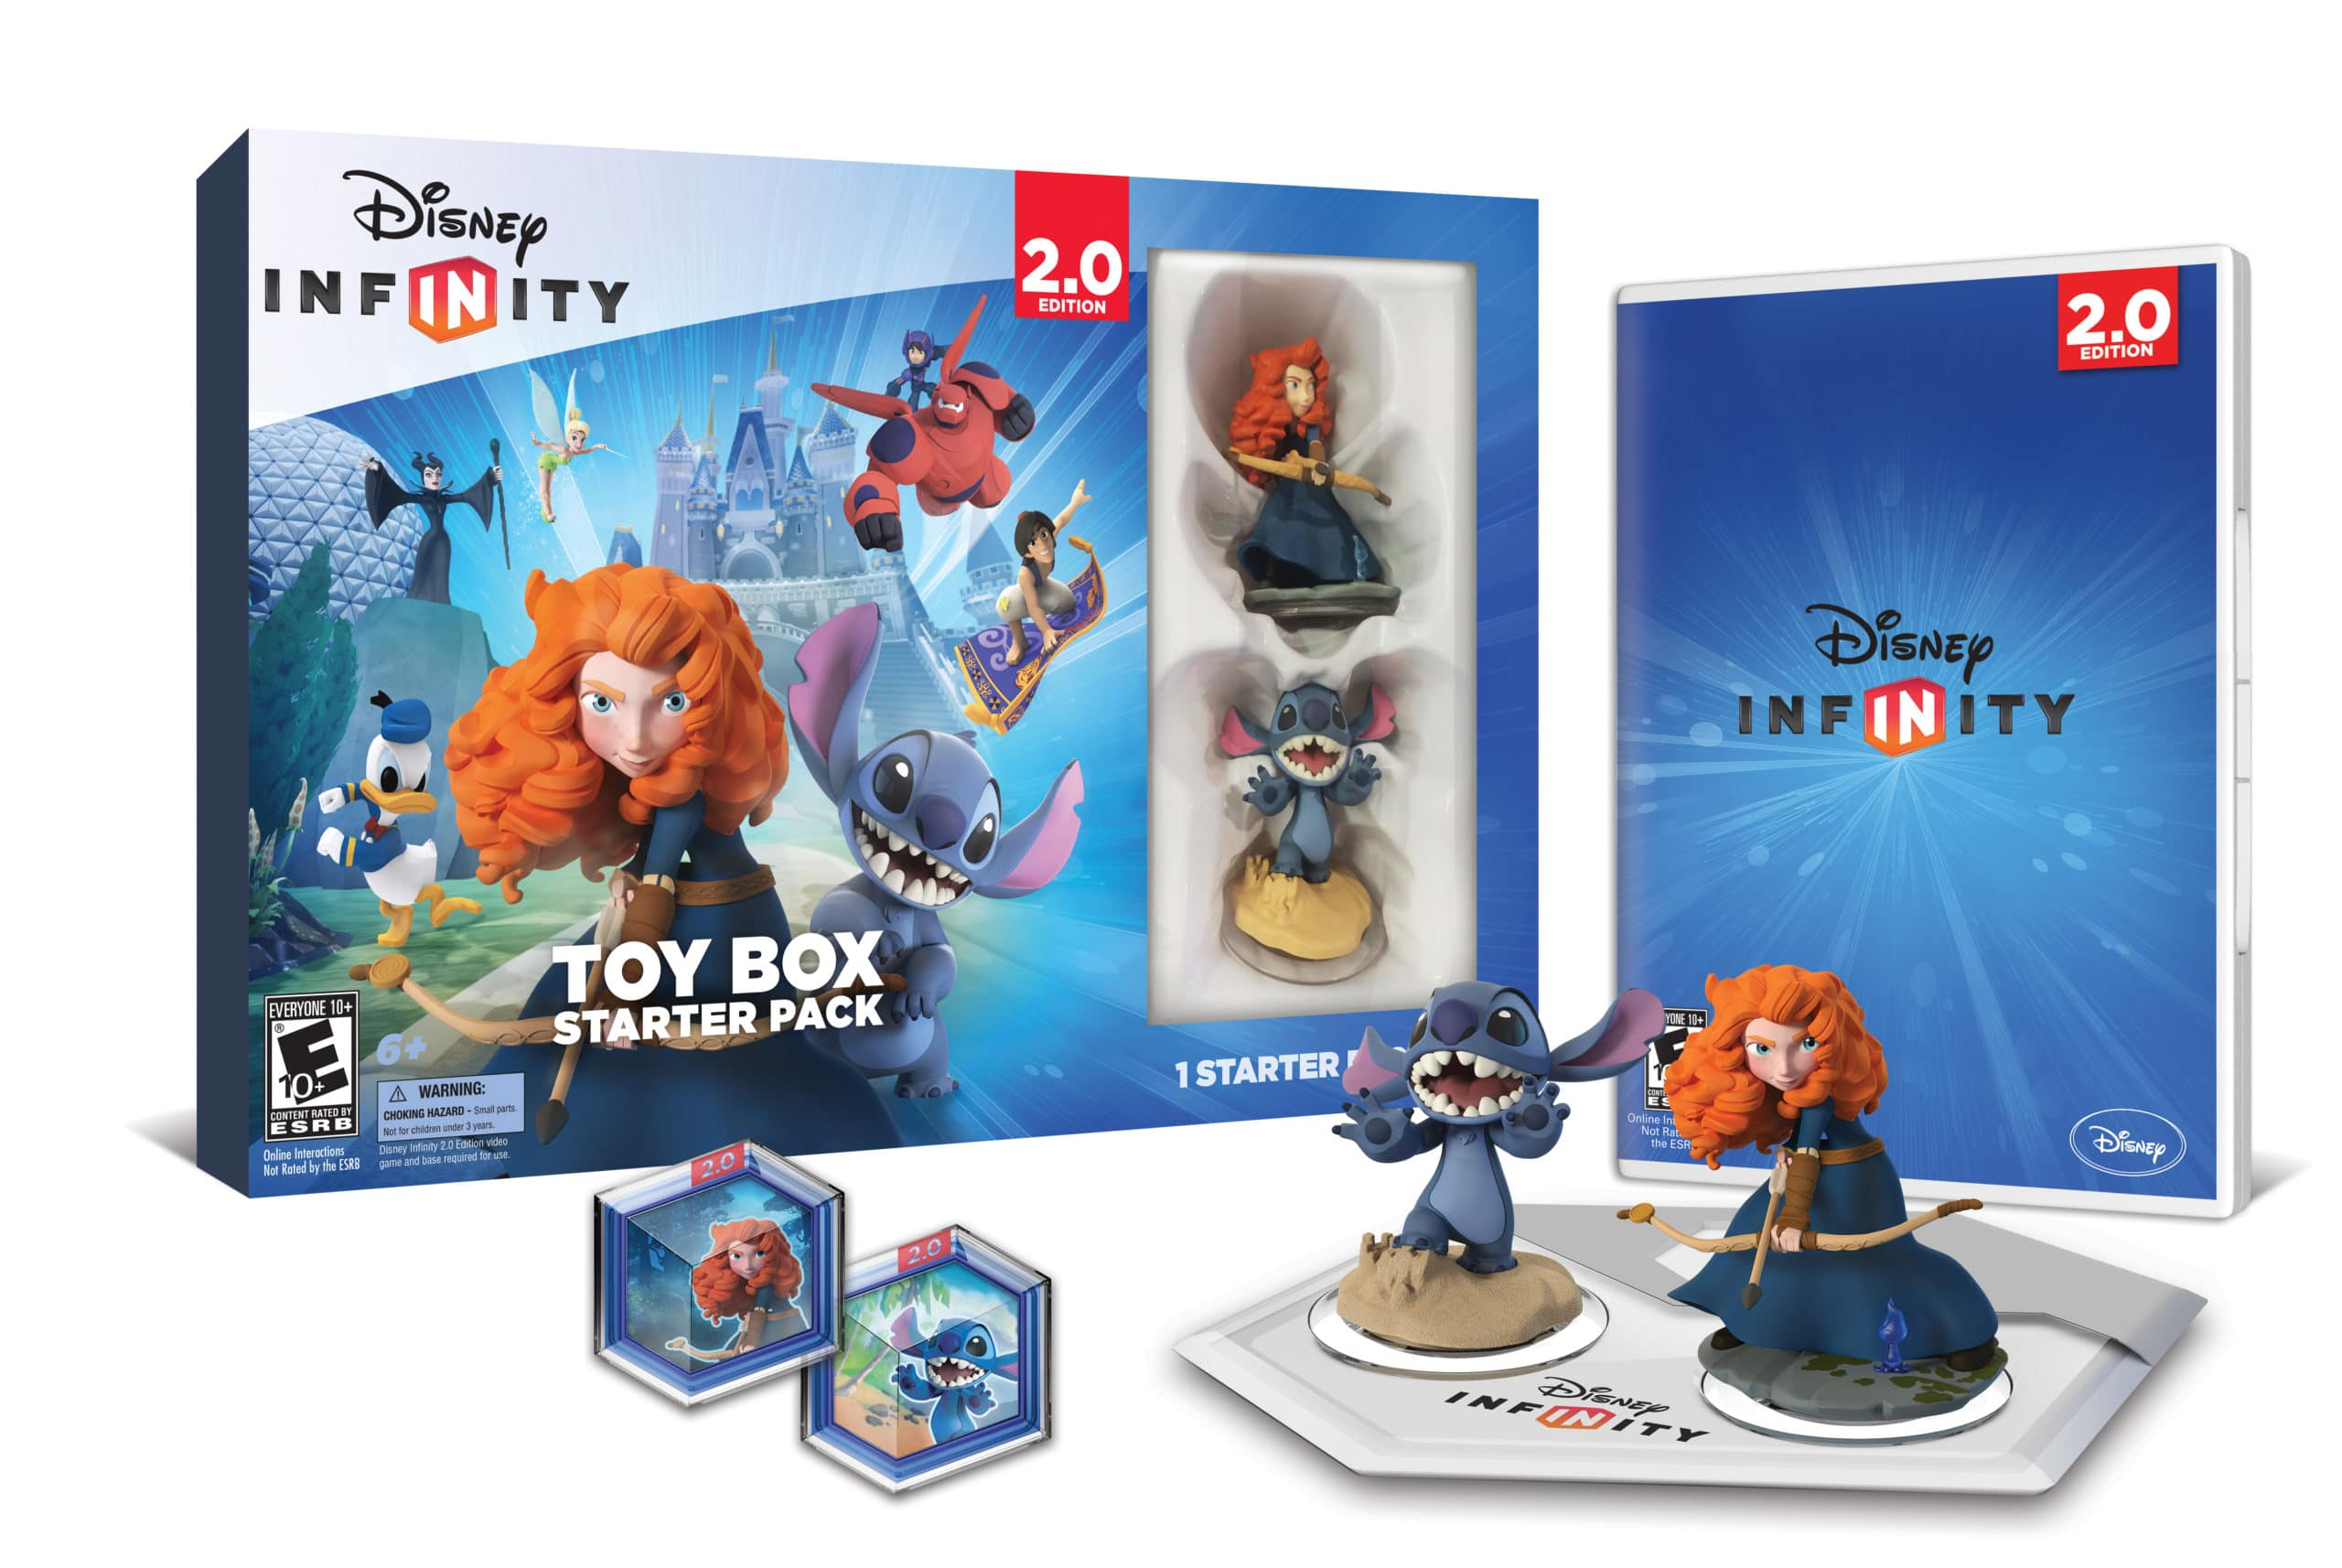 Disney Infinity: Toy Box Starter Pack (2.0 Edition) Available Today!